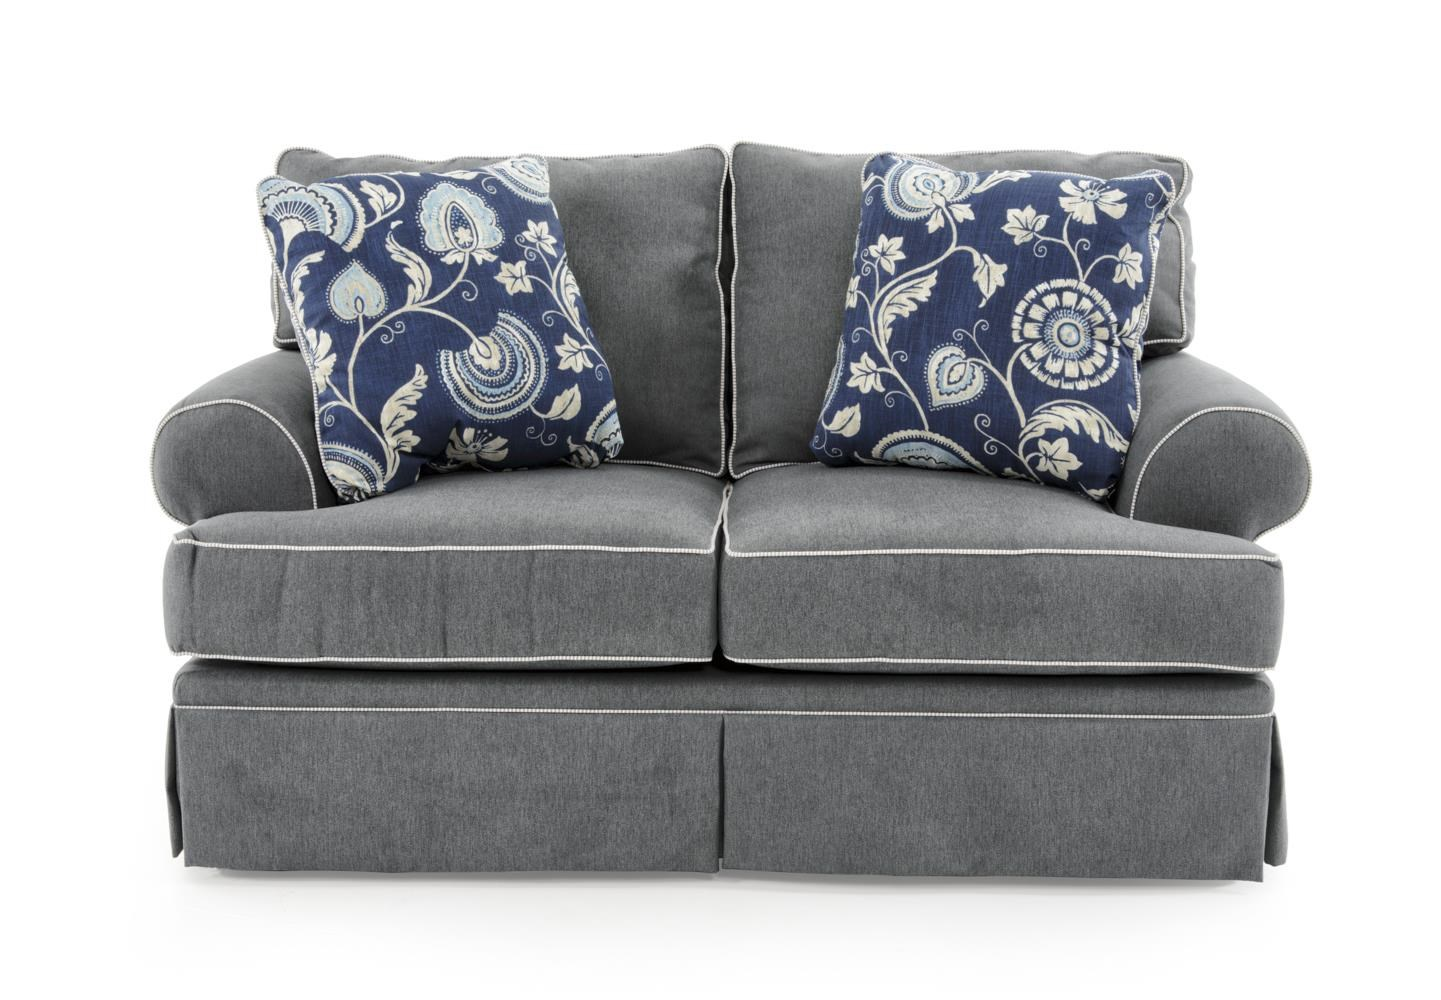 Broyhill Furniture Emily Loveseat - Item Number: 6262-1 4022-44